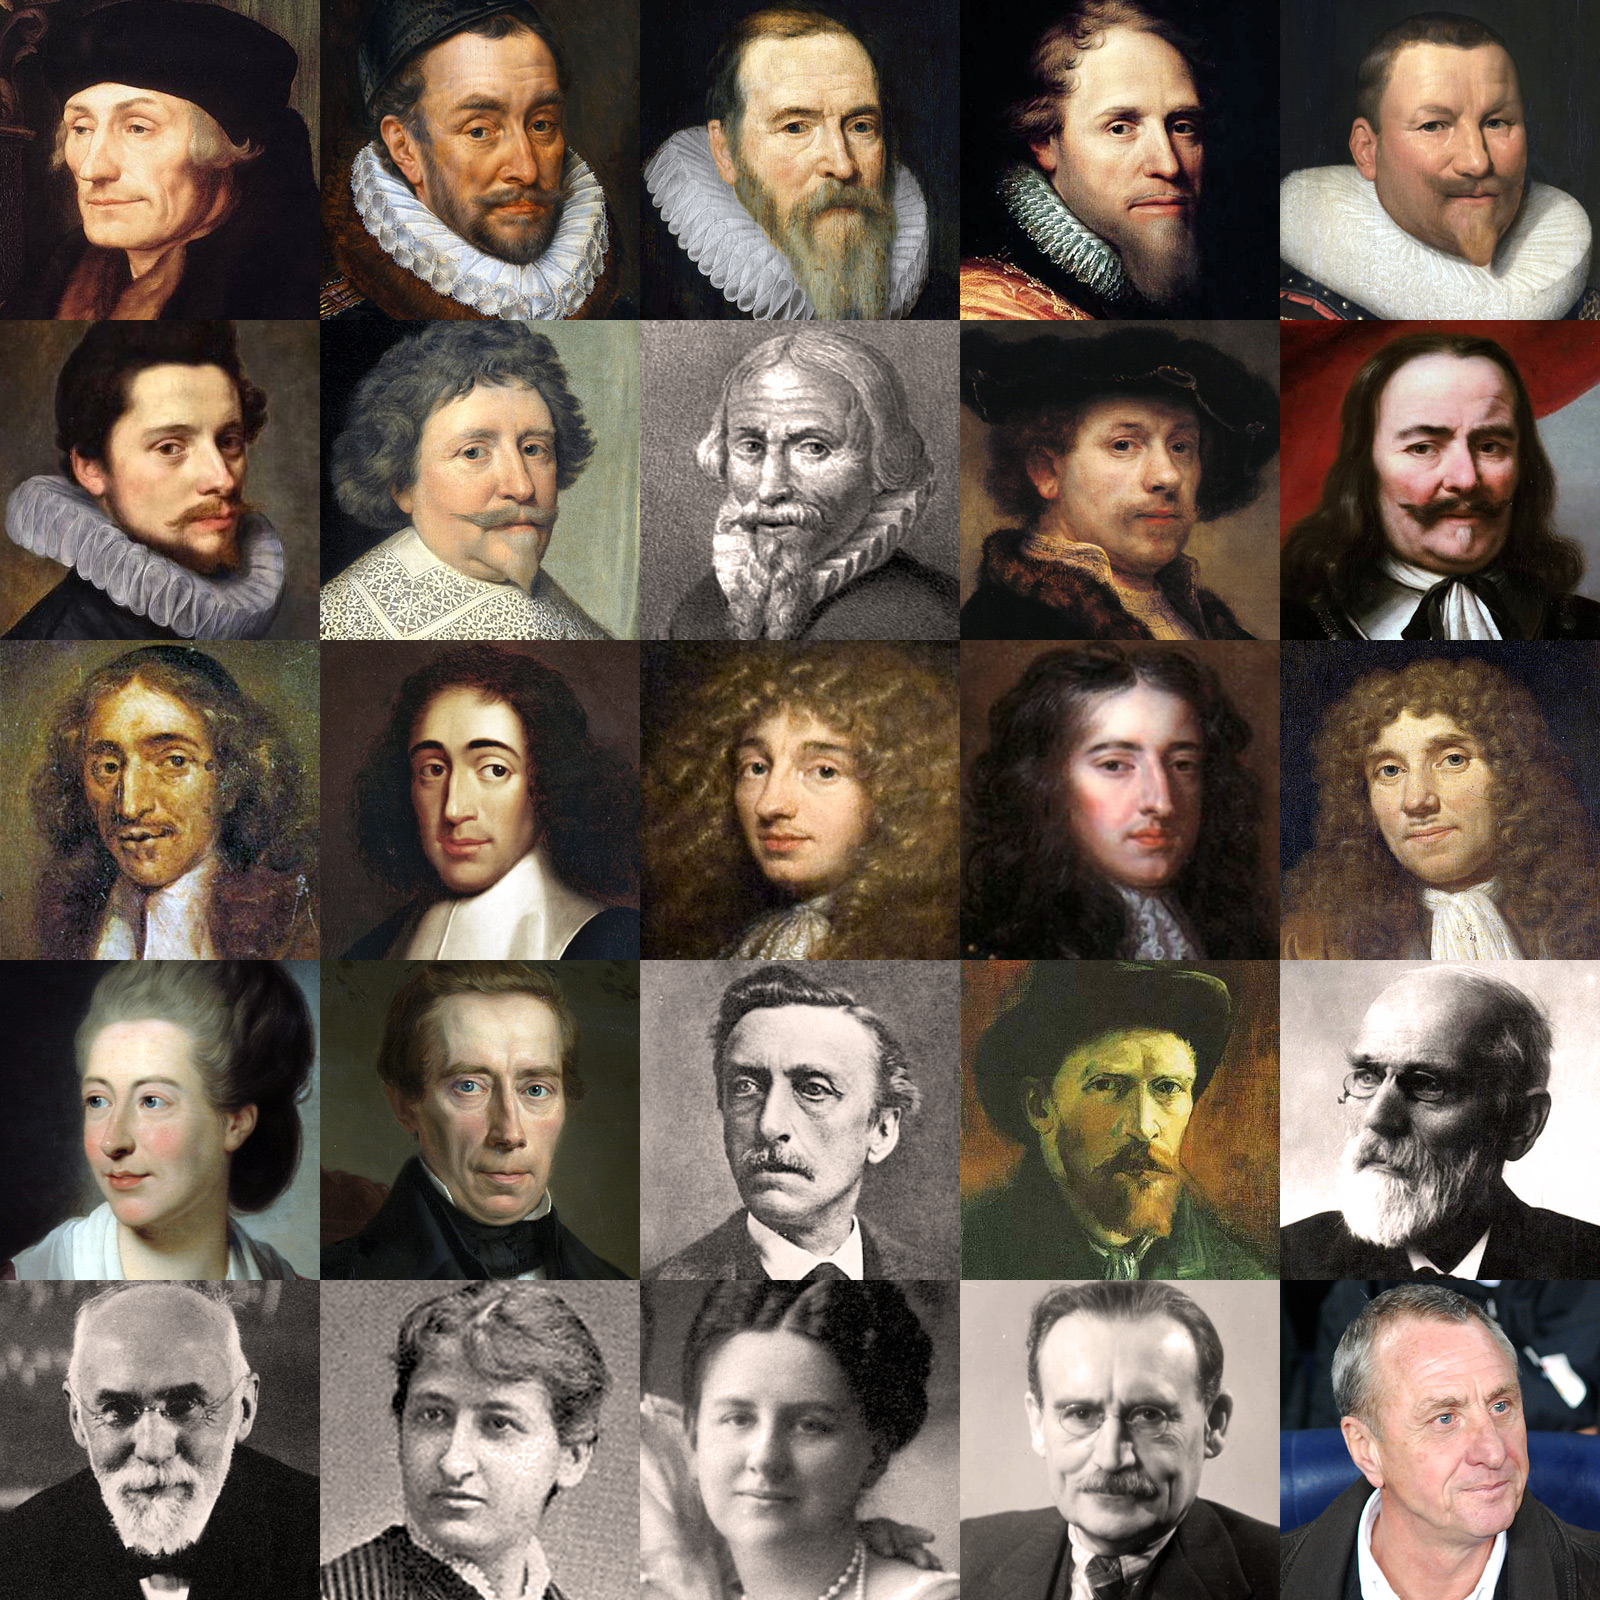 http://upload.wikimedia.org/wikipedia/commons/7/76/Famous_Dutch_People.jpg